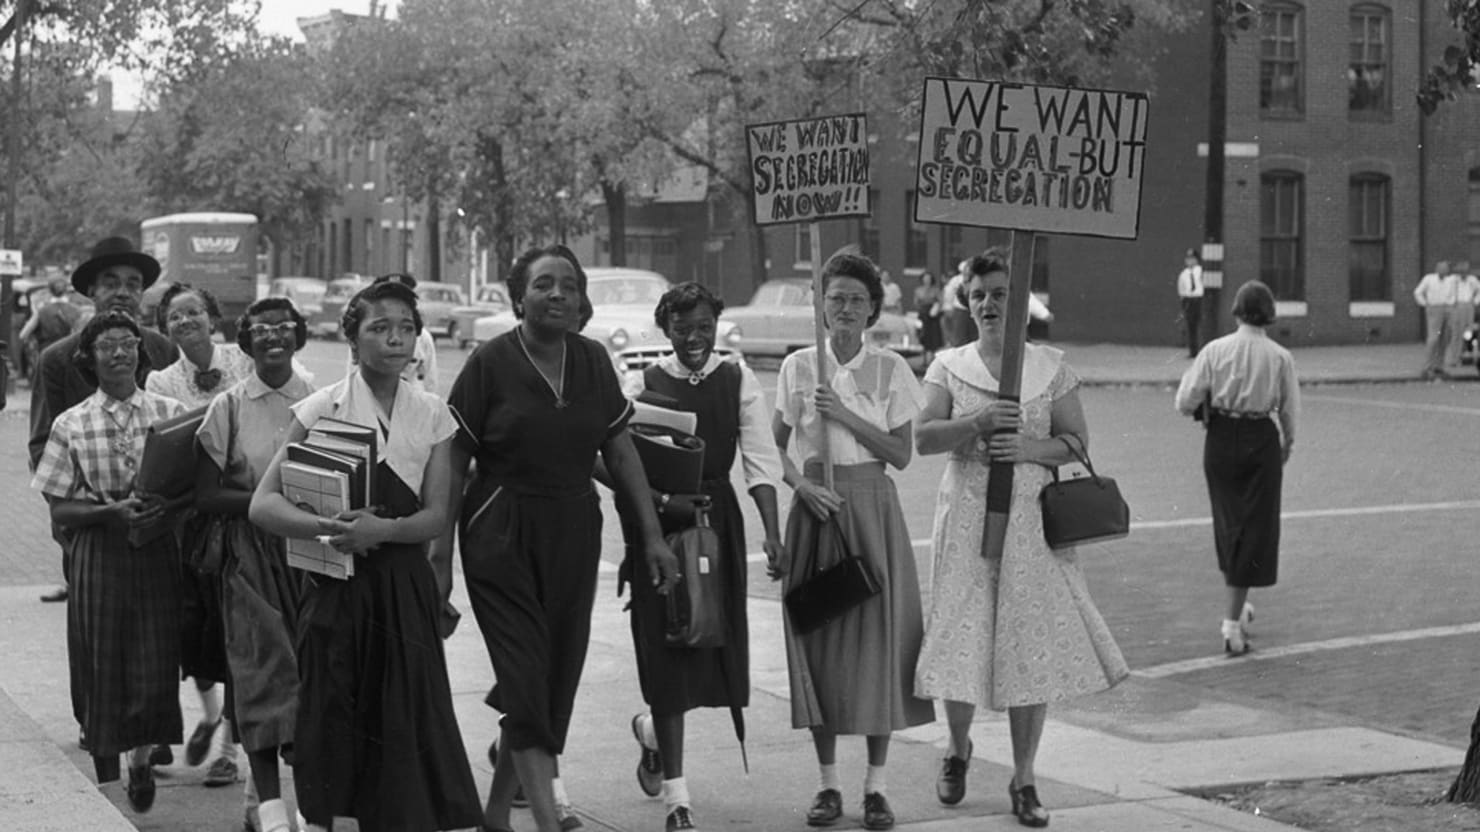 The Supreme Court's Ruling and the End of the Civil Rights Era